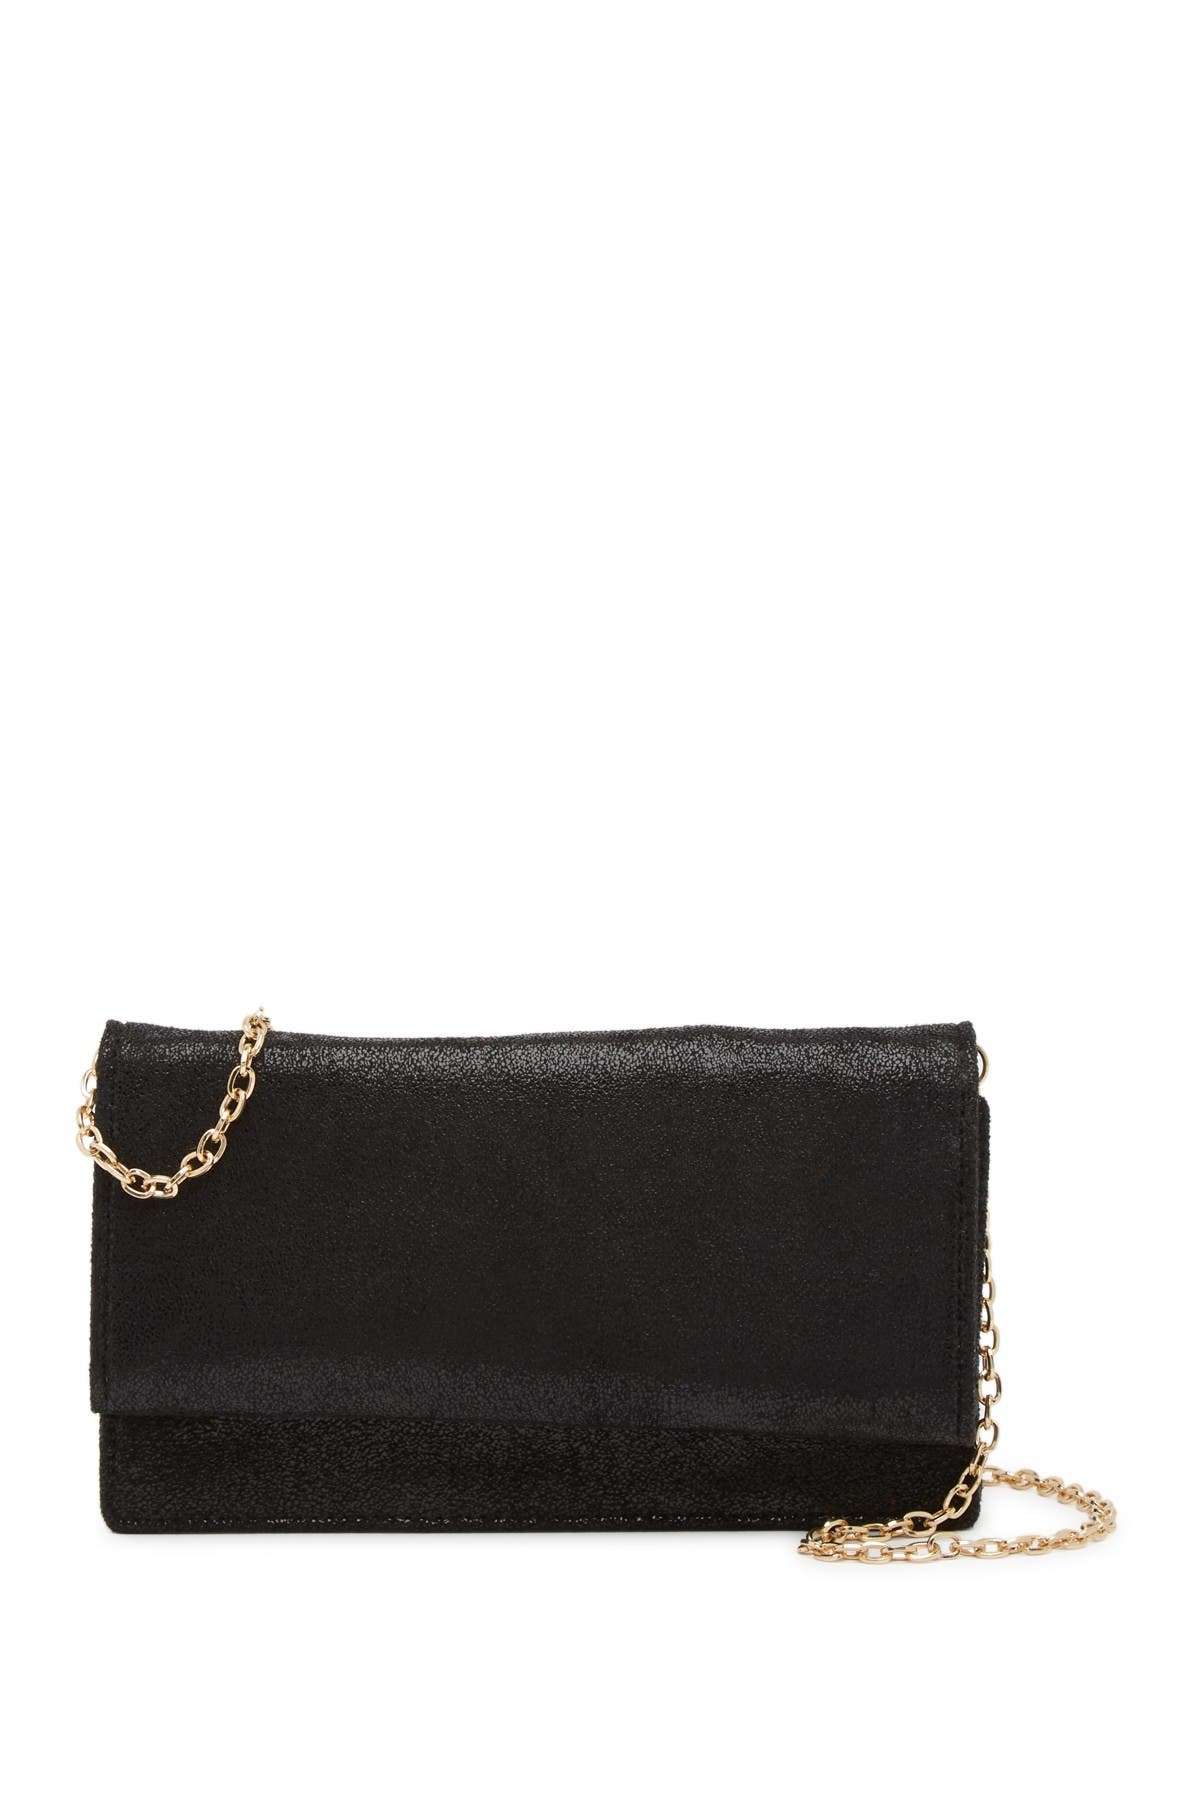 Image of Urban Expressions Jolie Vegan Suede Clutch